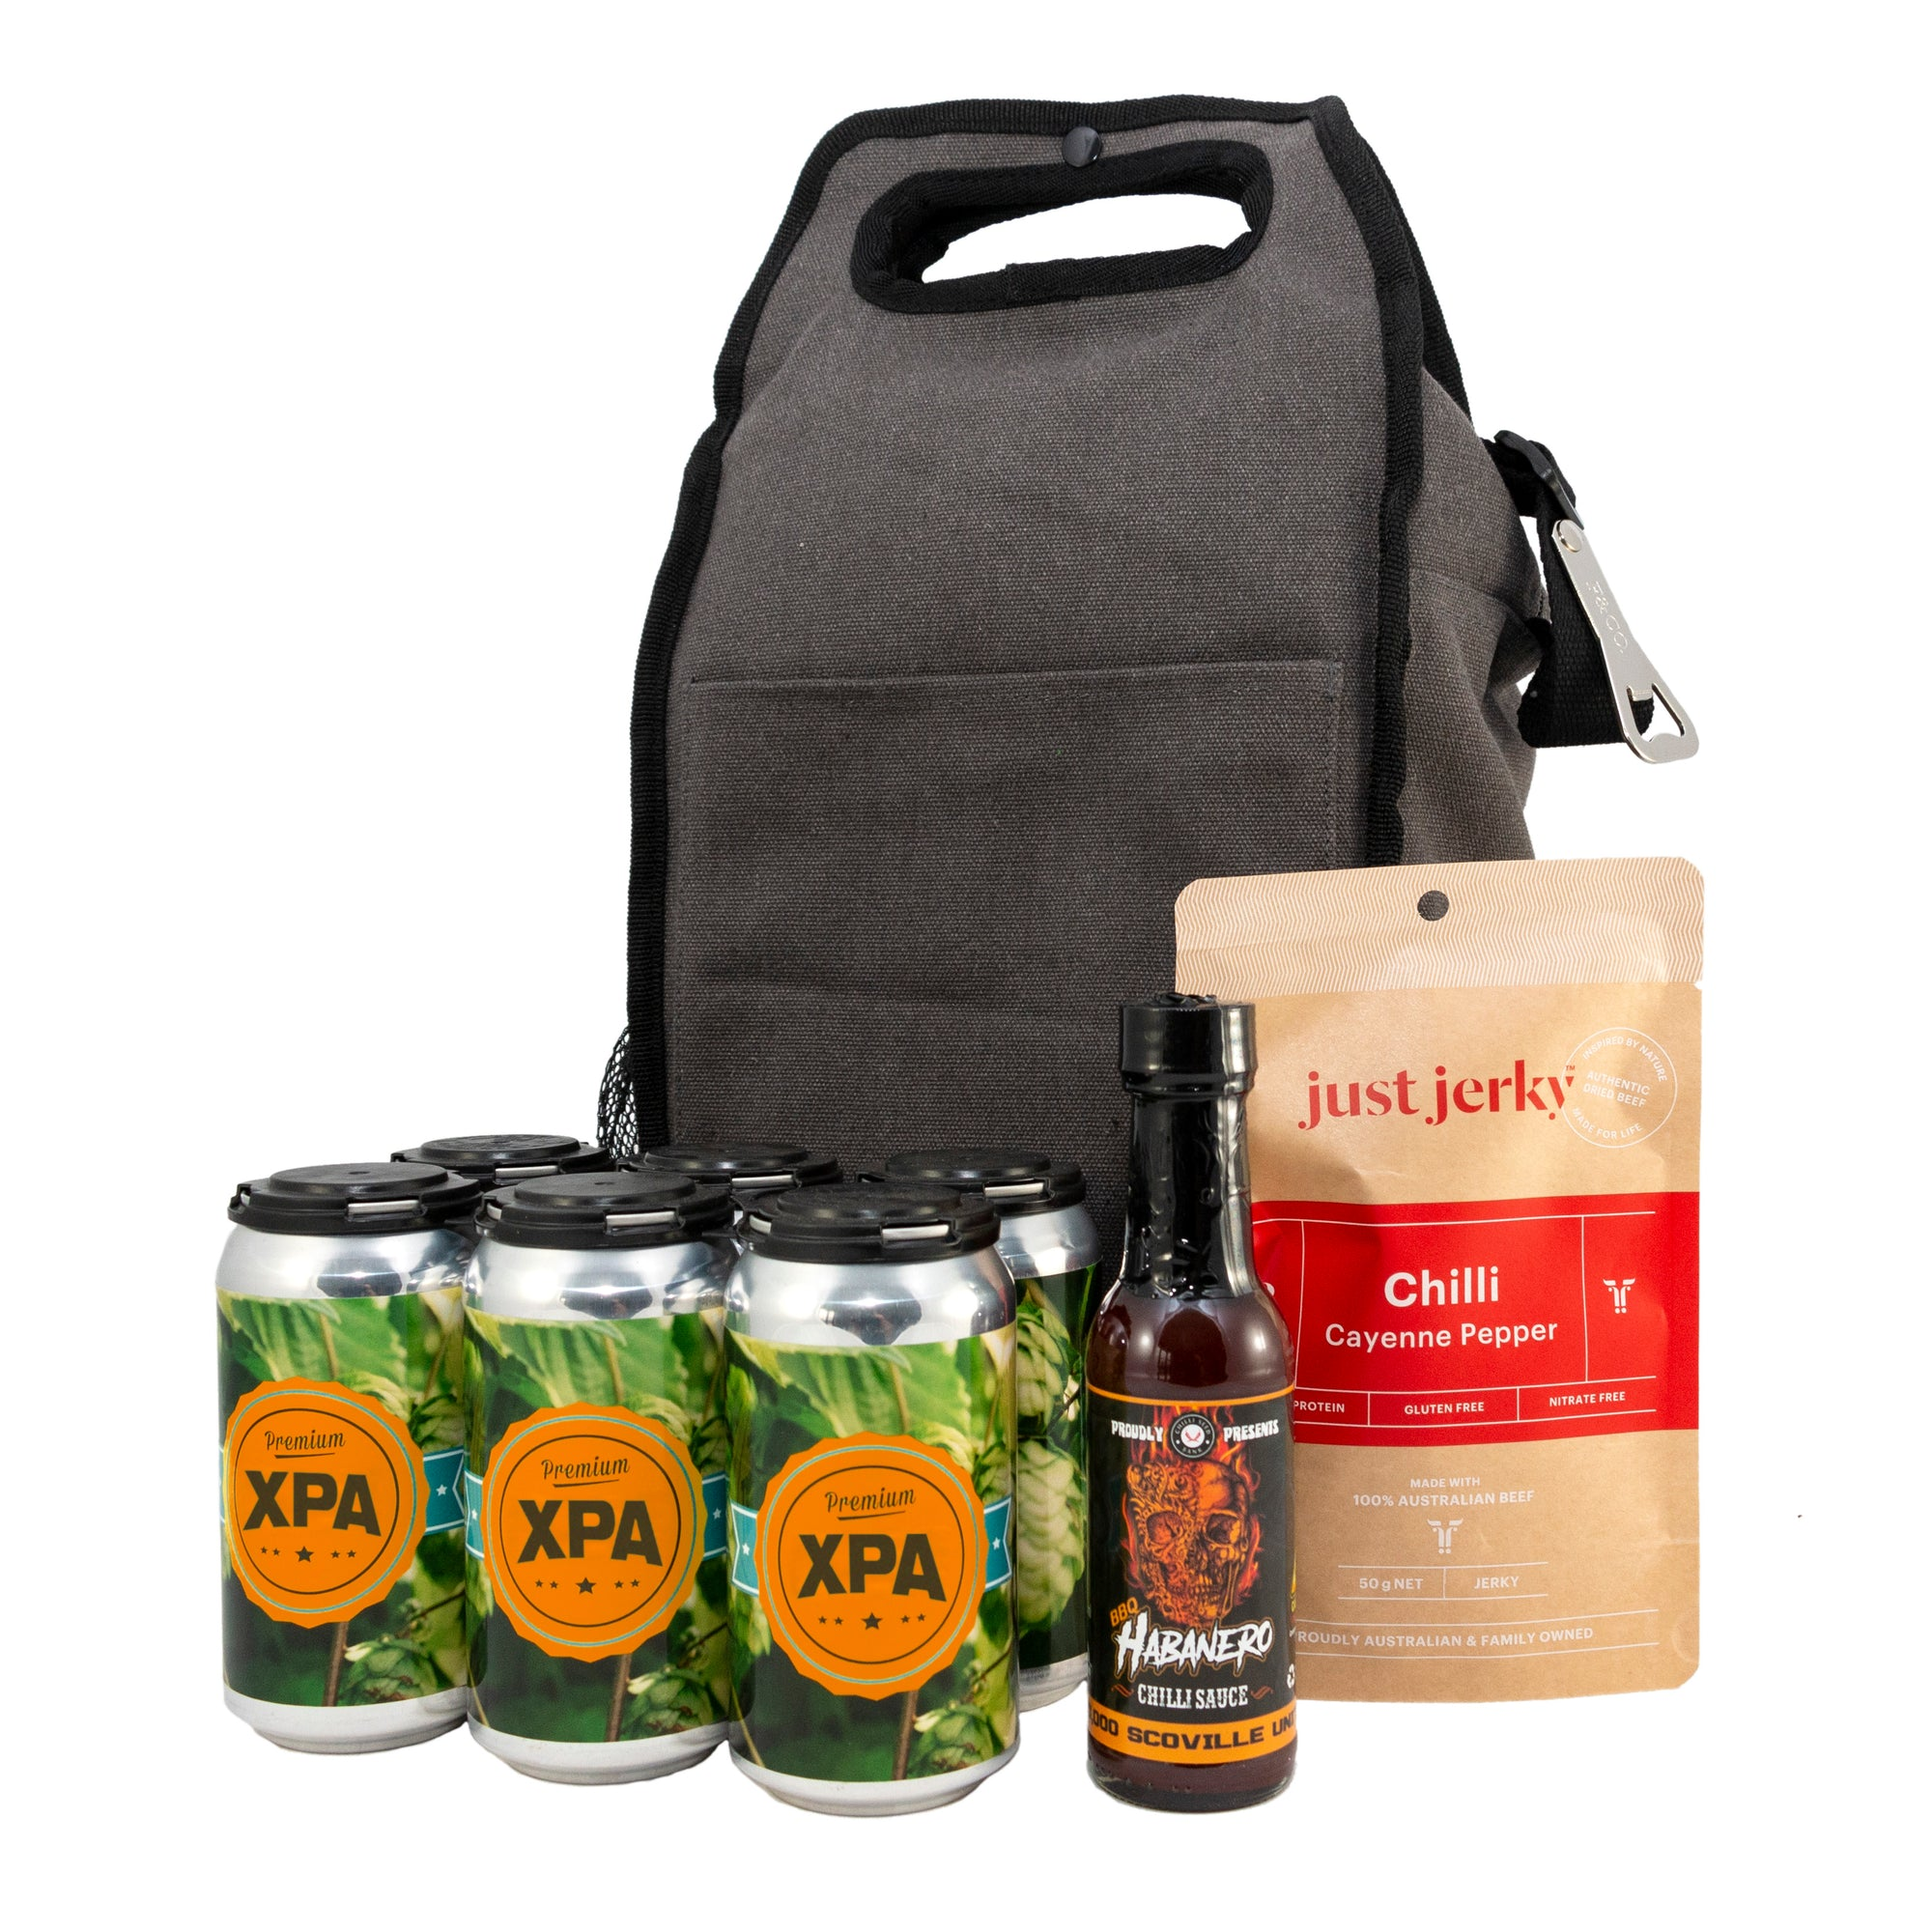 XPA CANS - Chilli Pack & Cooler Bag - 375ml - 6 pack